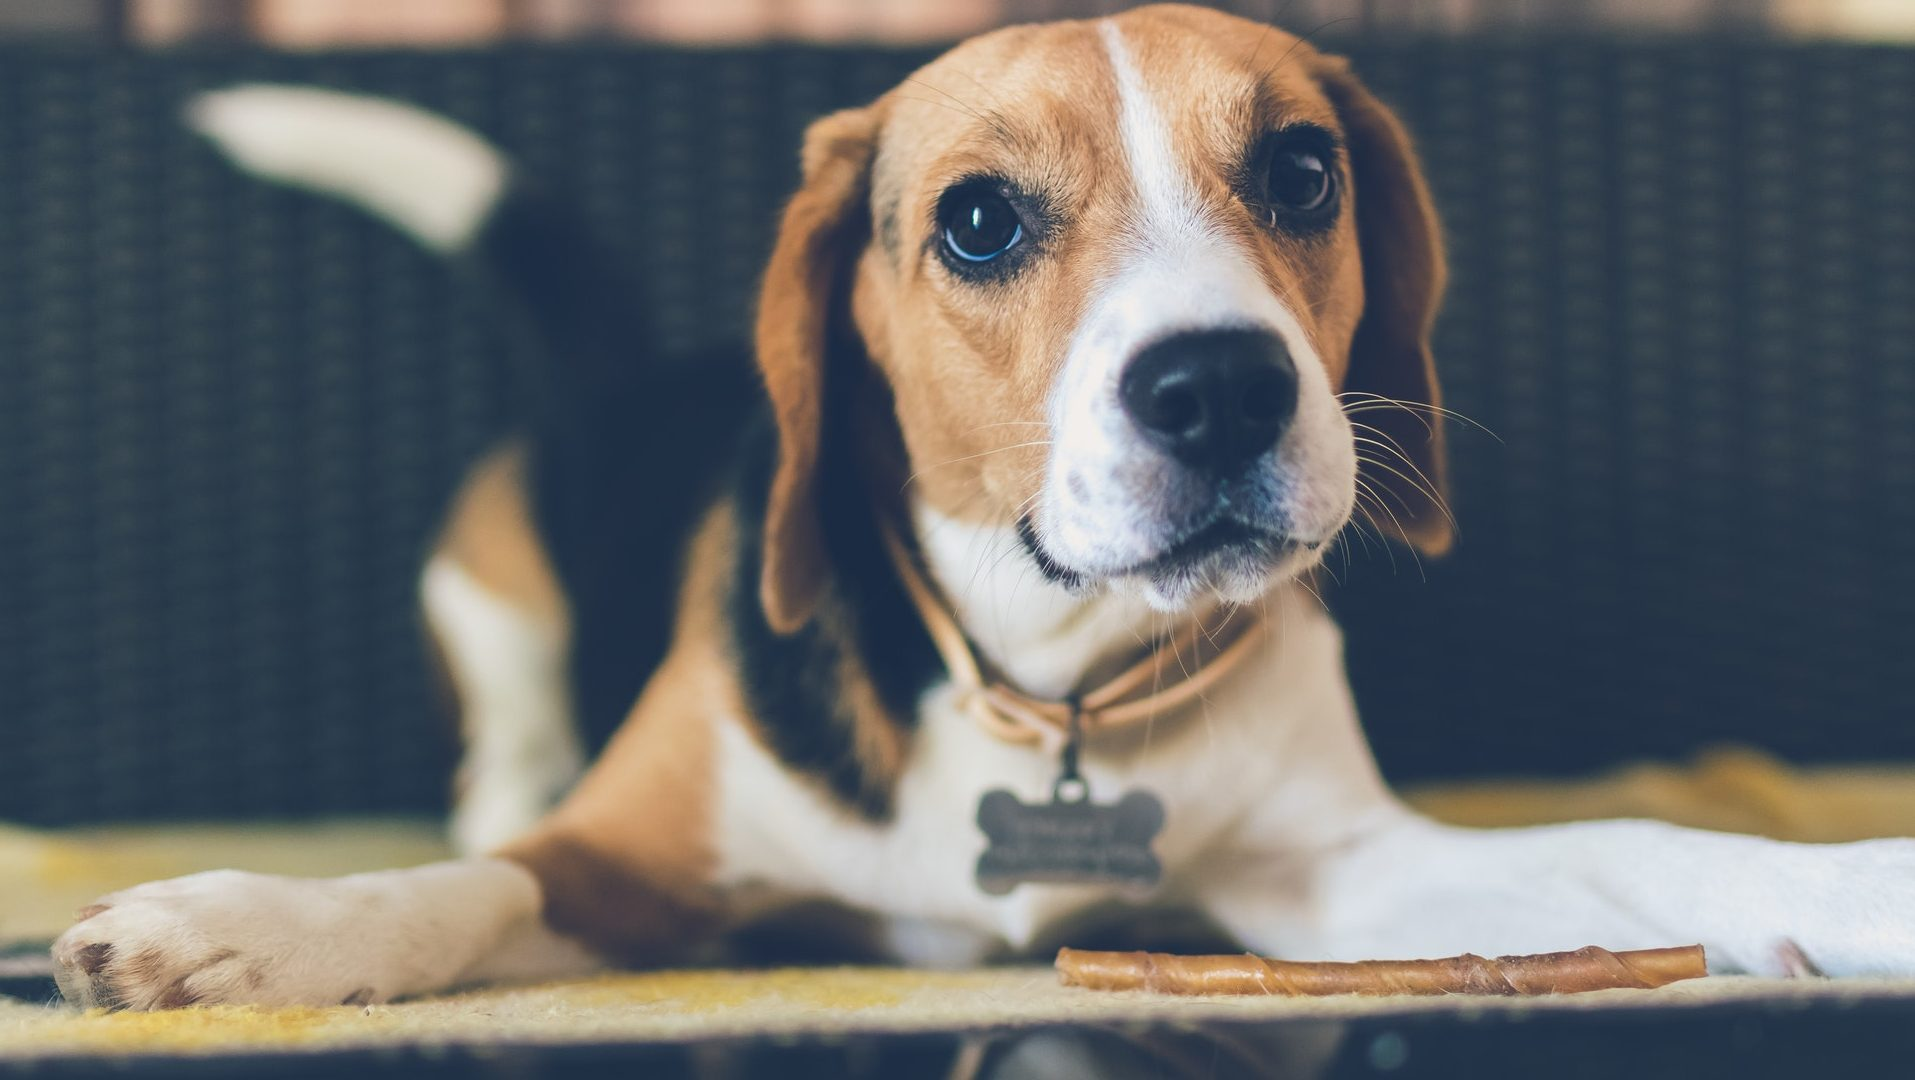 imploring beagle